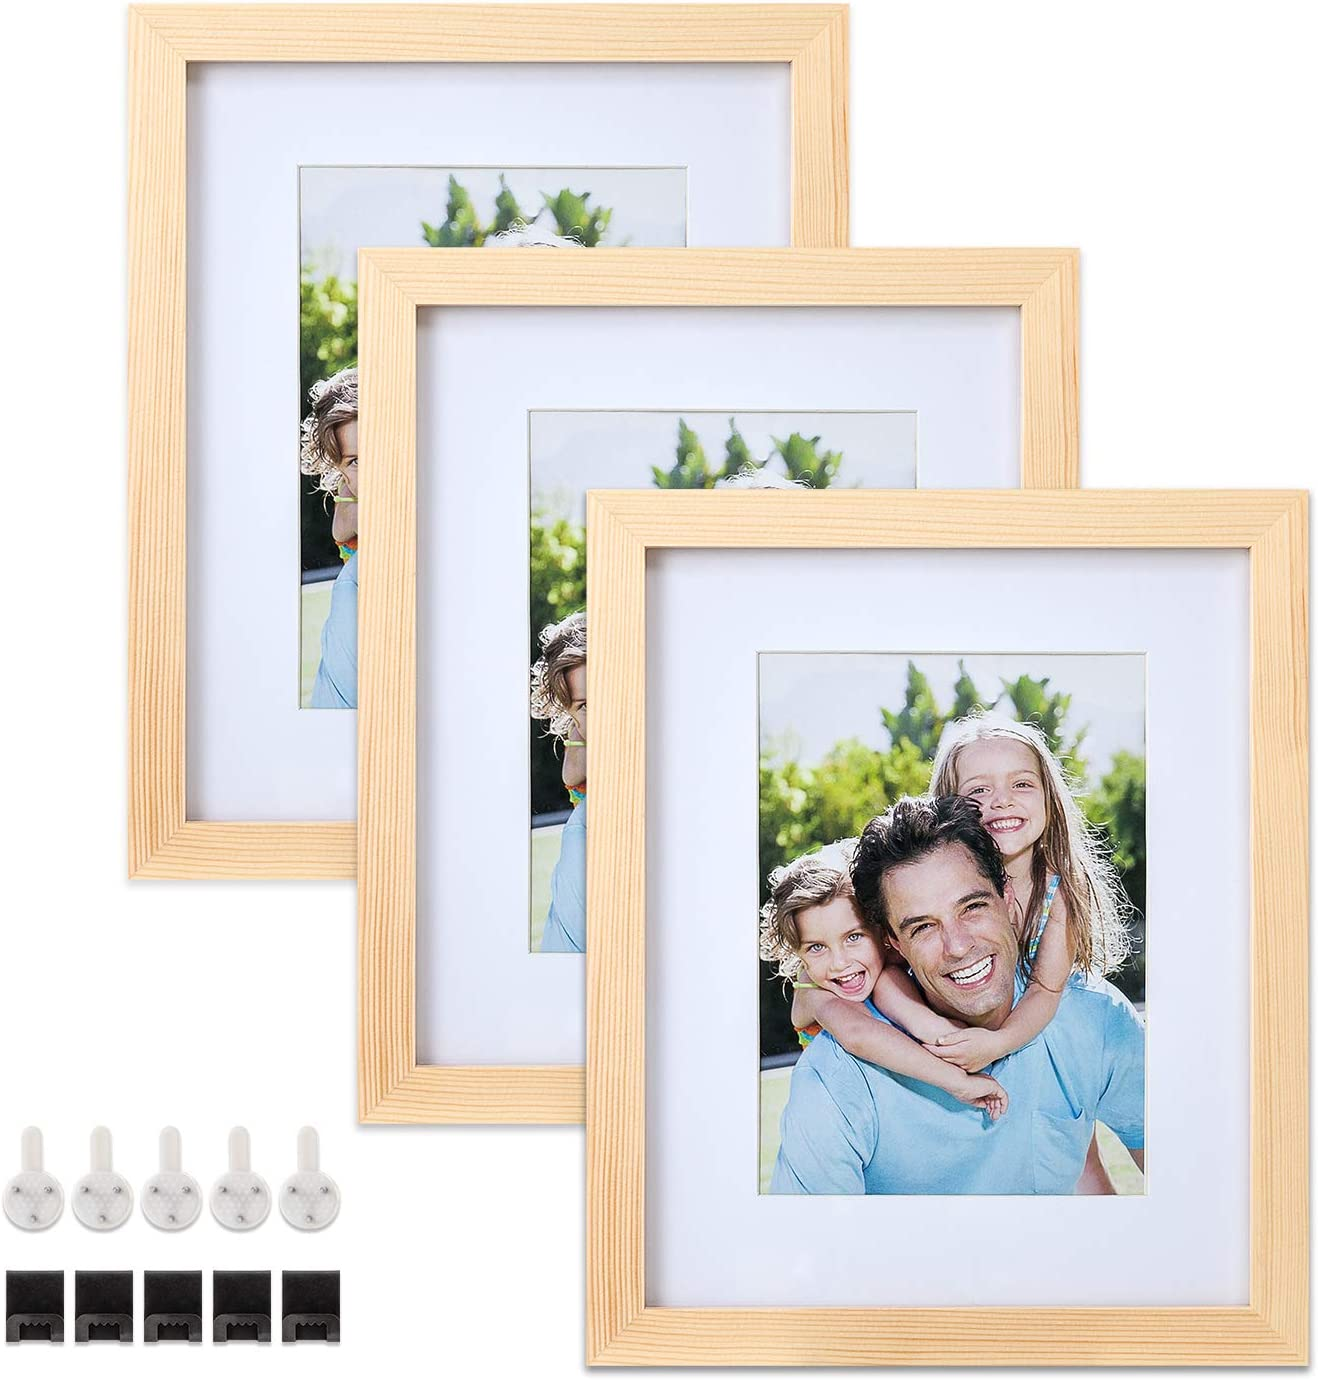 3 Pack Mounting Hardware Included for Wall or Tabletop Display Natural Wood Color Photo Frame Set with Mat and Glass Cover Sindcom 8x10 Solid Wood Picture Frames